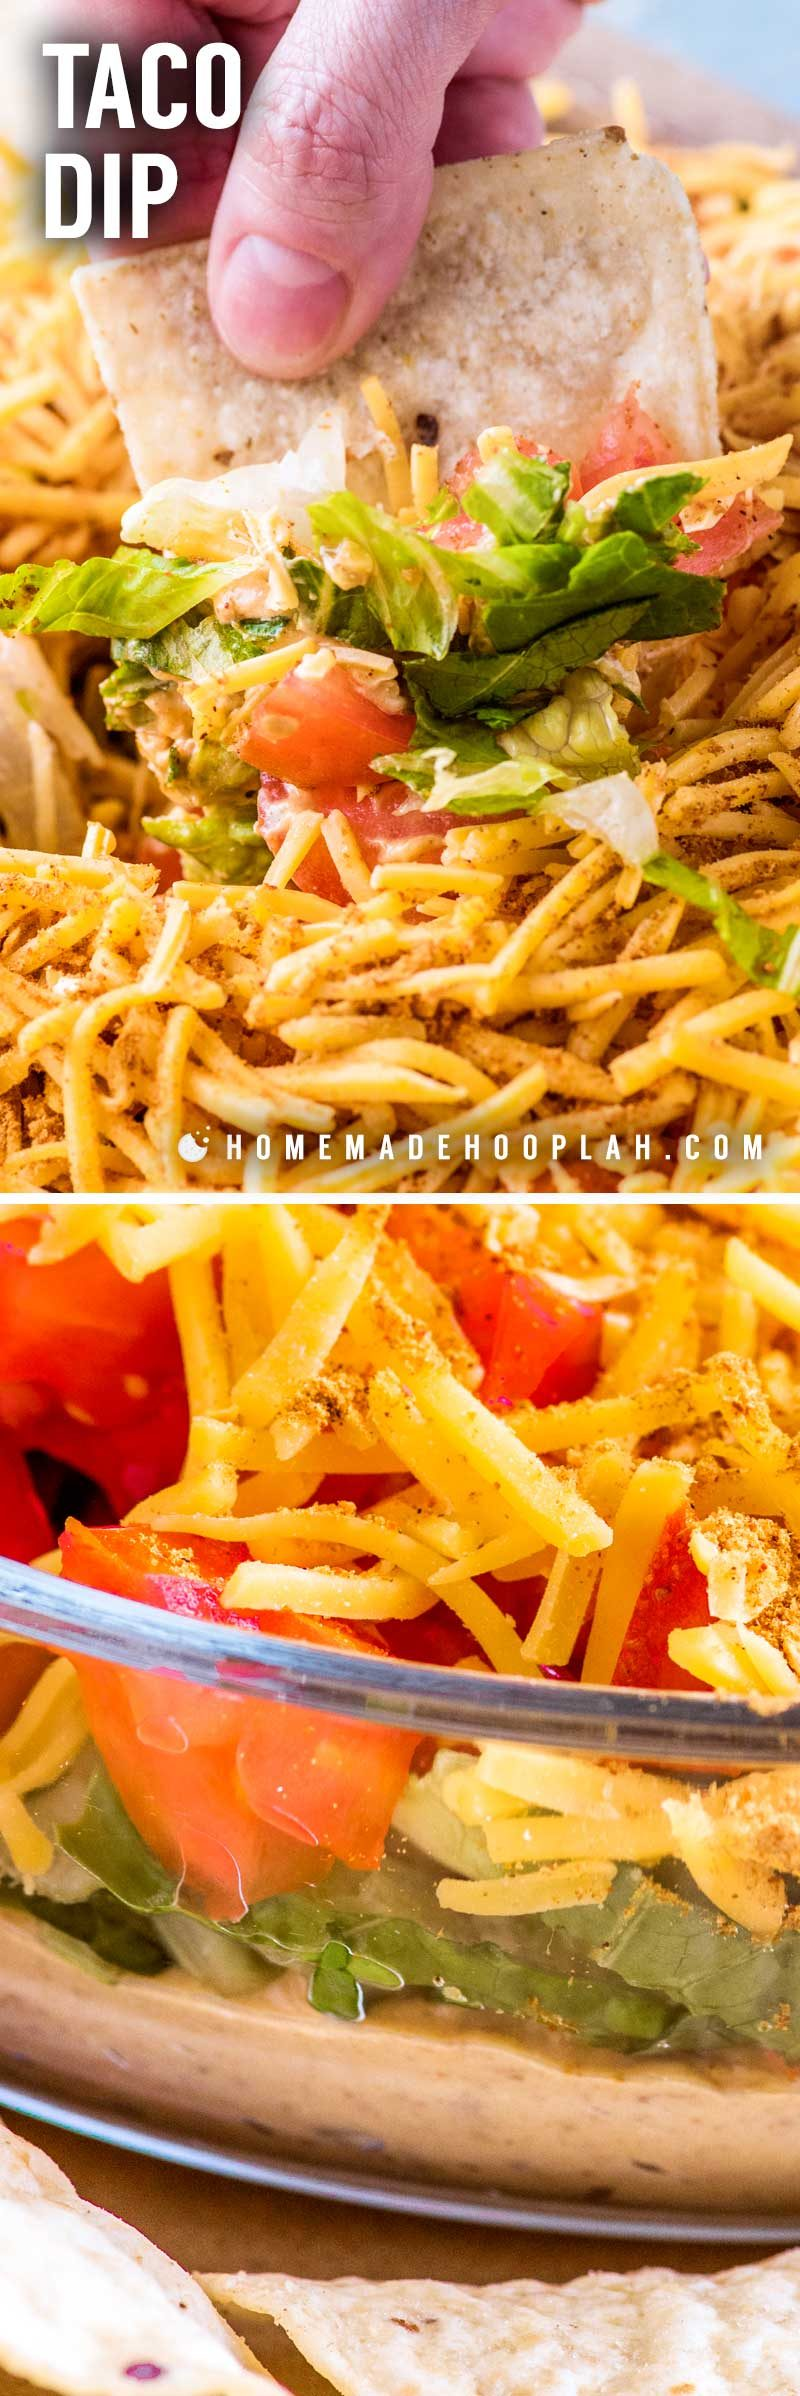 How to make taco salad dip with cream cheese